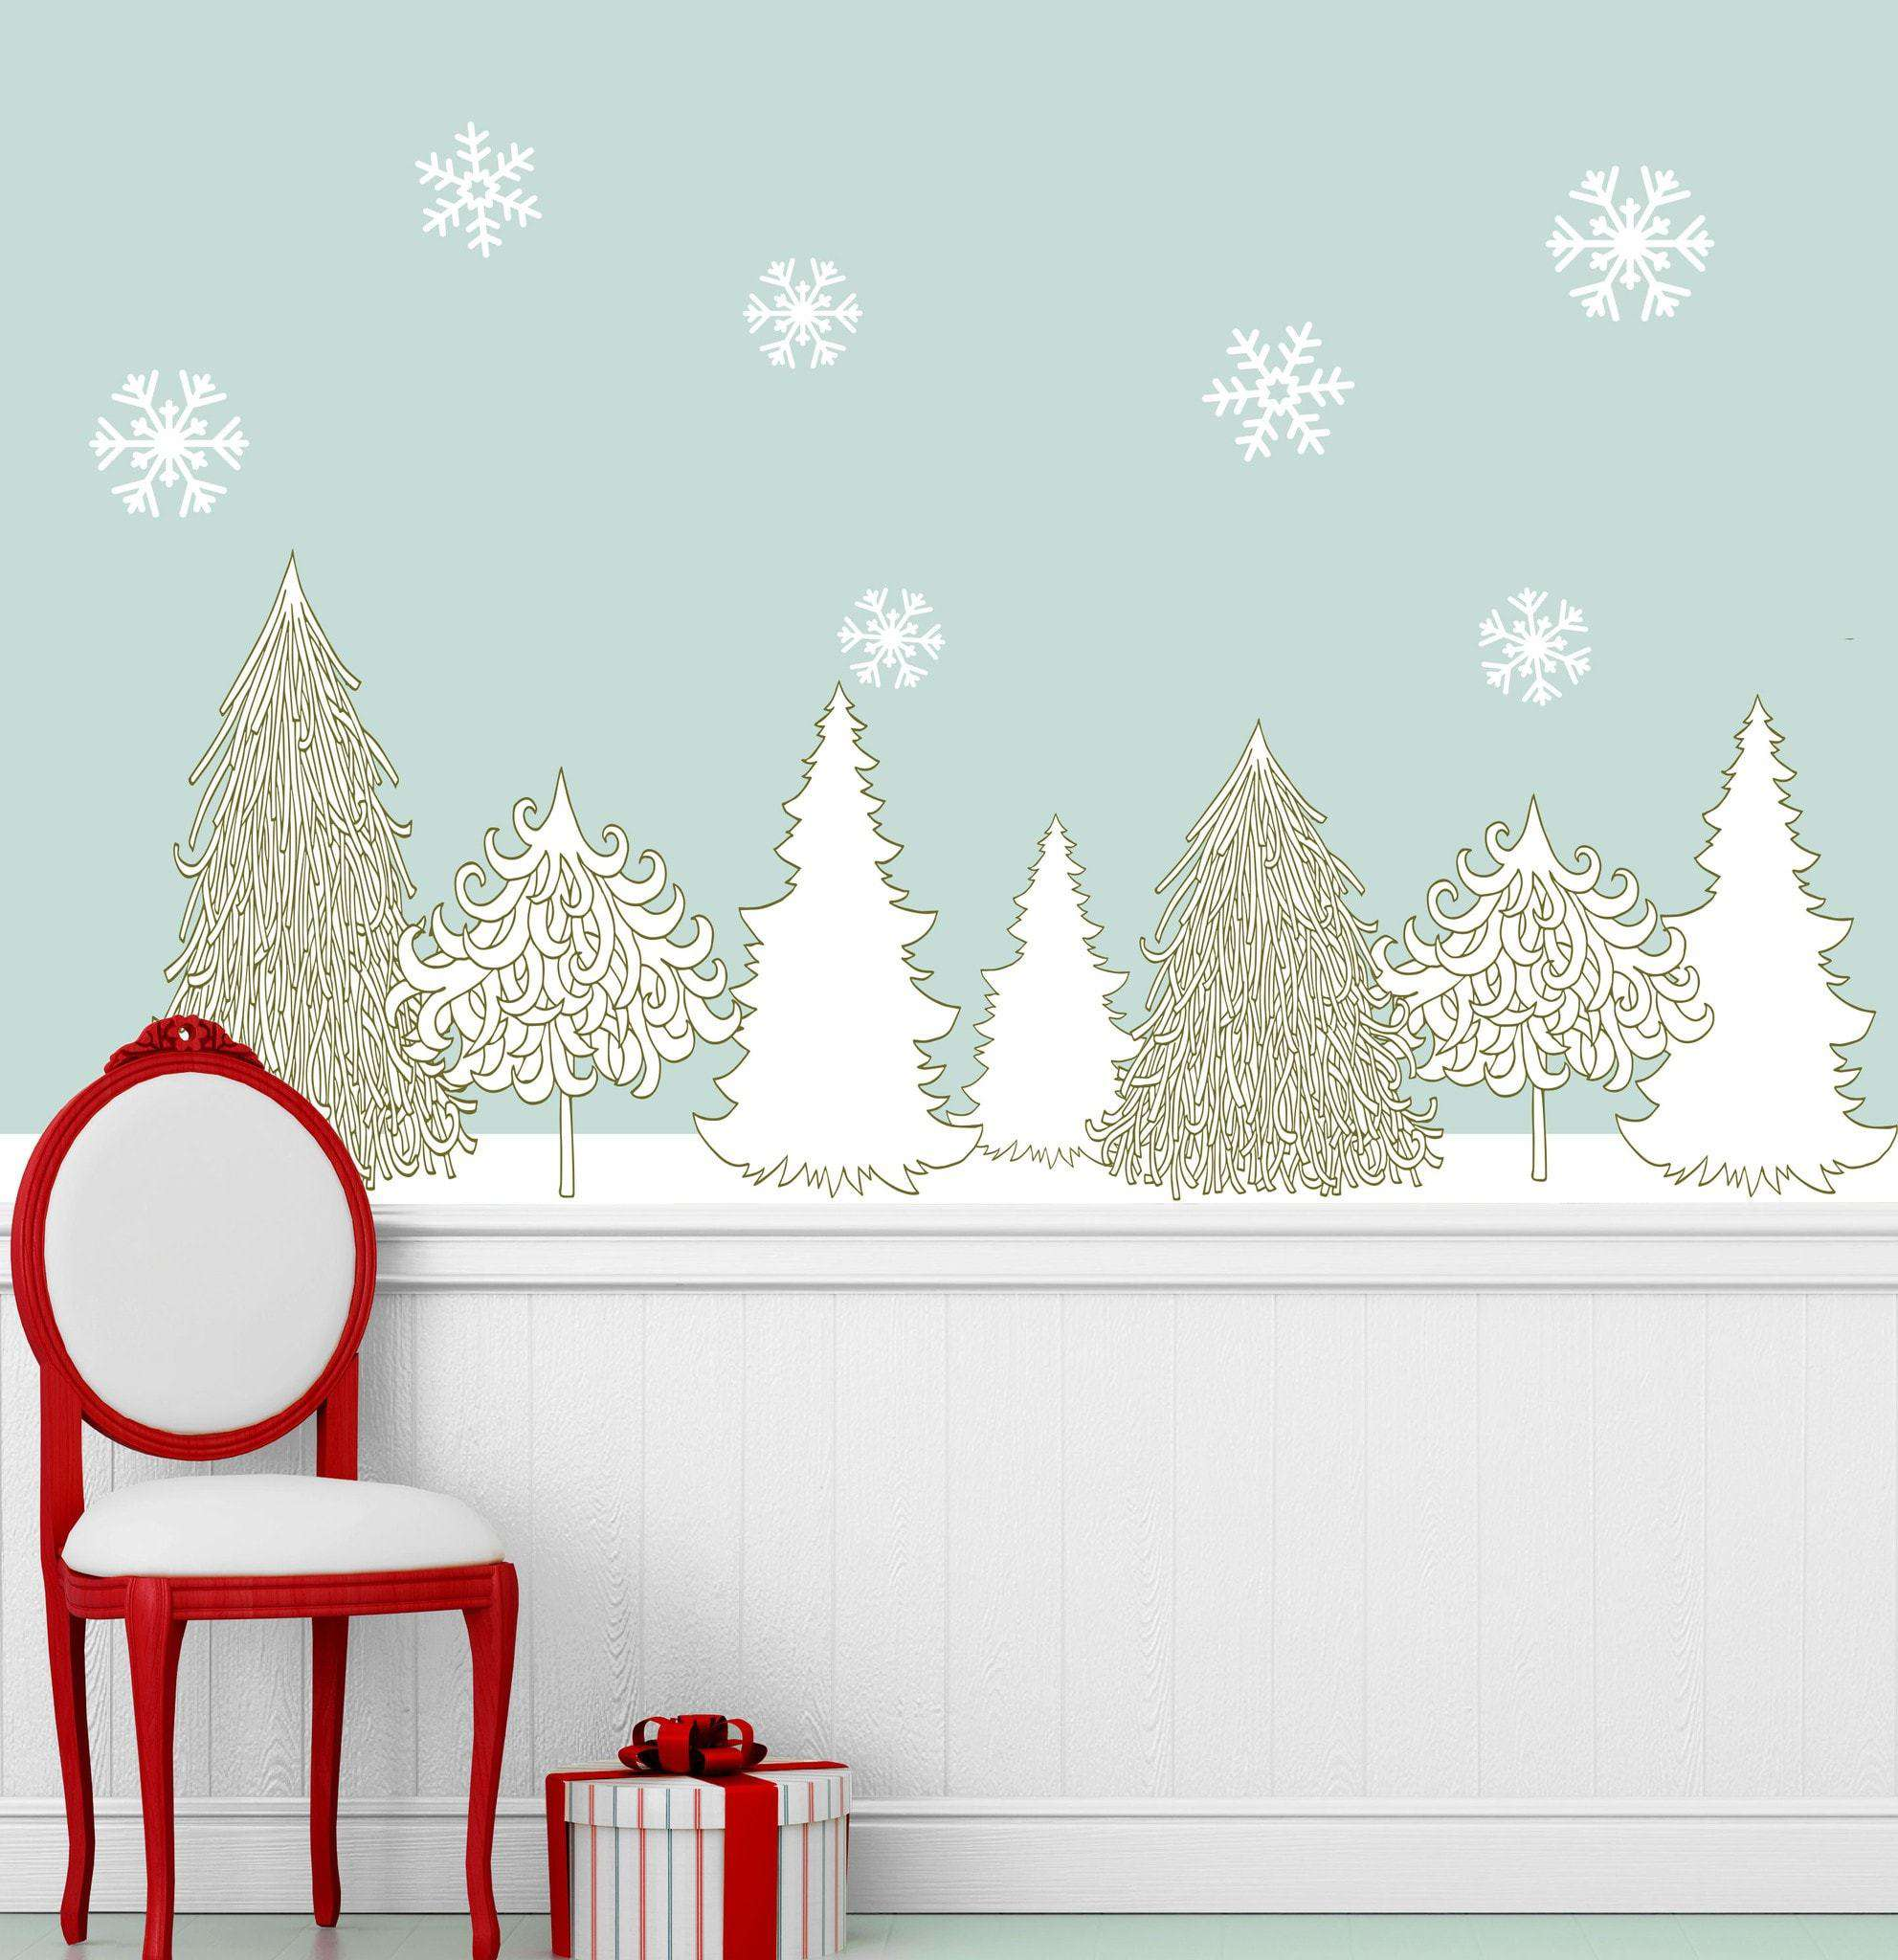 Marvelous Winter Wonderland Decal Set   Holiday Wall Decor Stickers   Snowflakes U0026  Trees